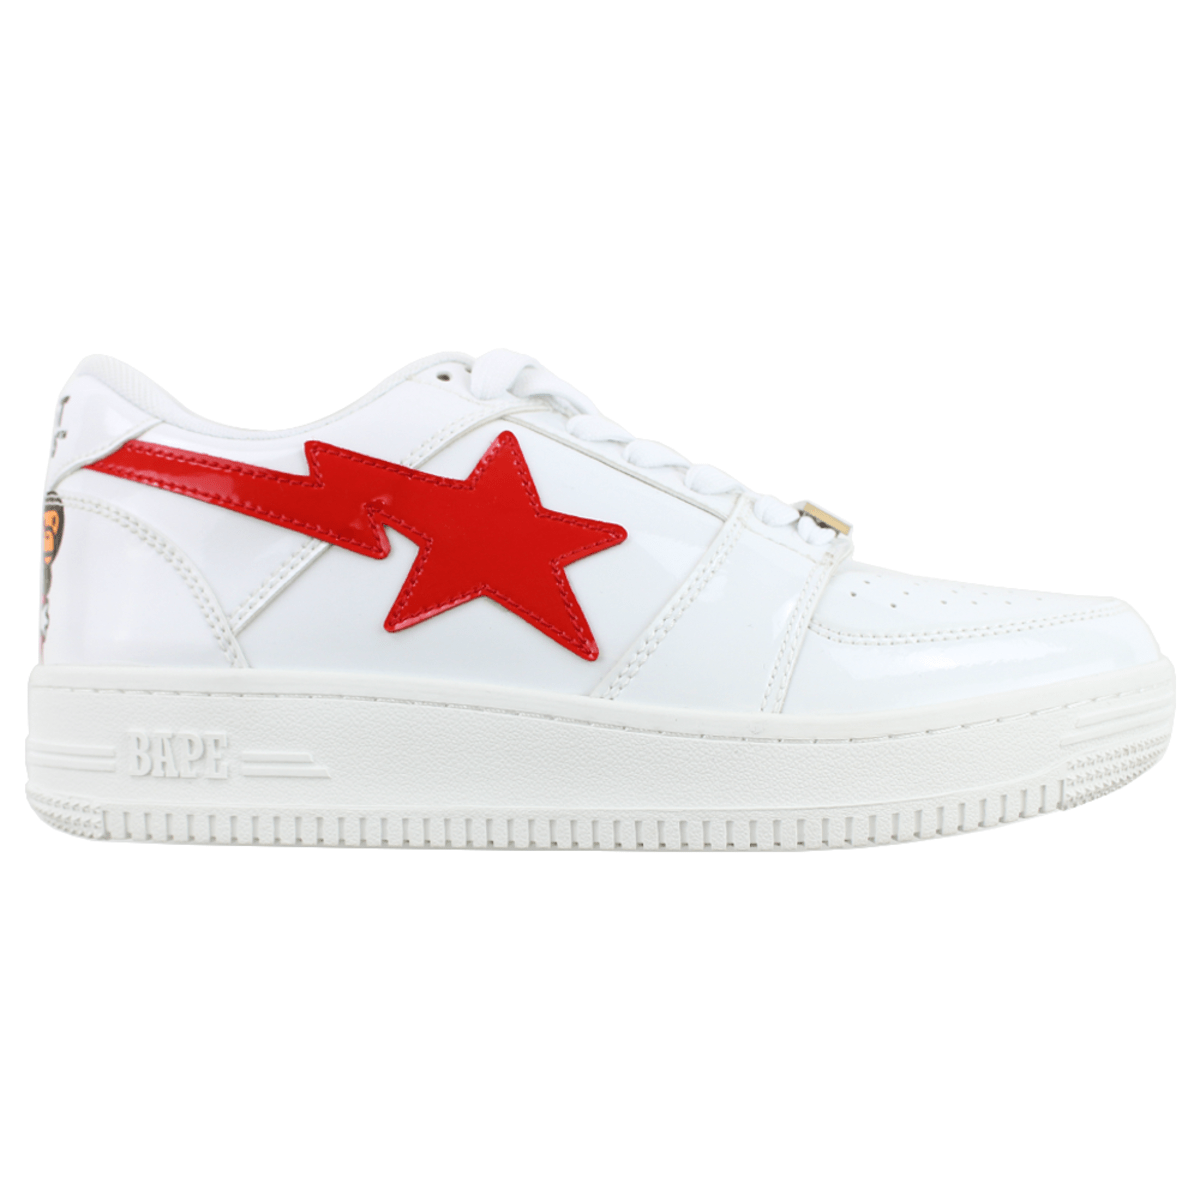 Bapesta x Ghostbusters Milo White Red